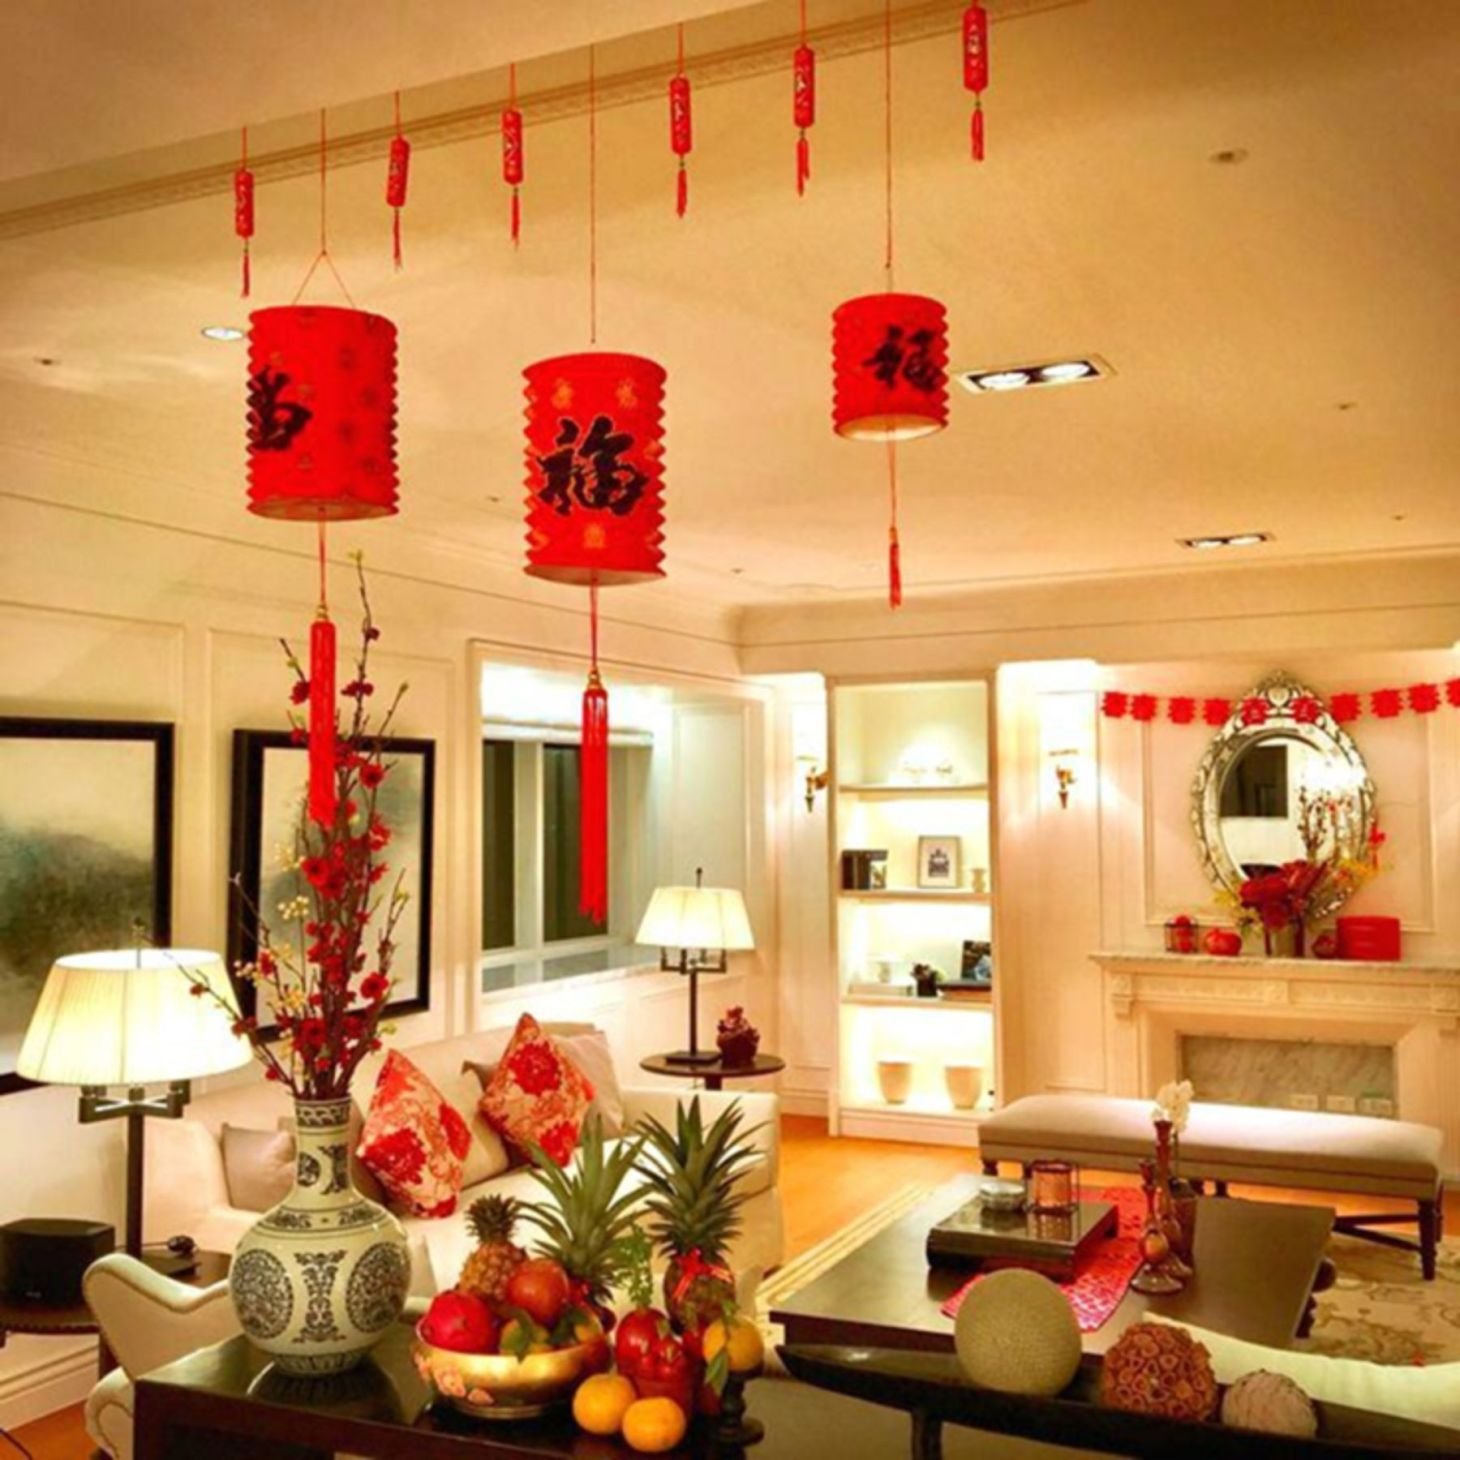 Best Living Room Design And Decoration To Make Chinese New Year Happy Chinese New Year Decorations Chinese Decor New Years Decorations